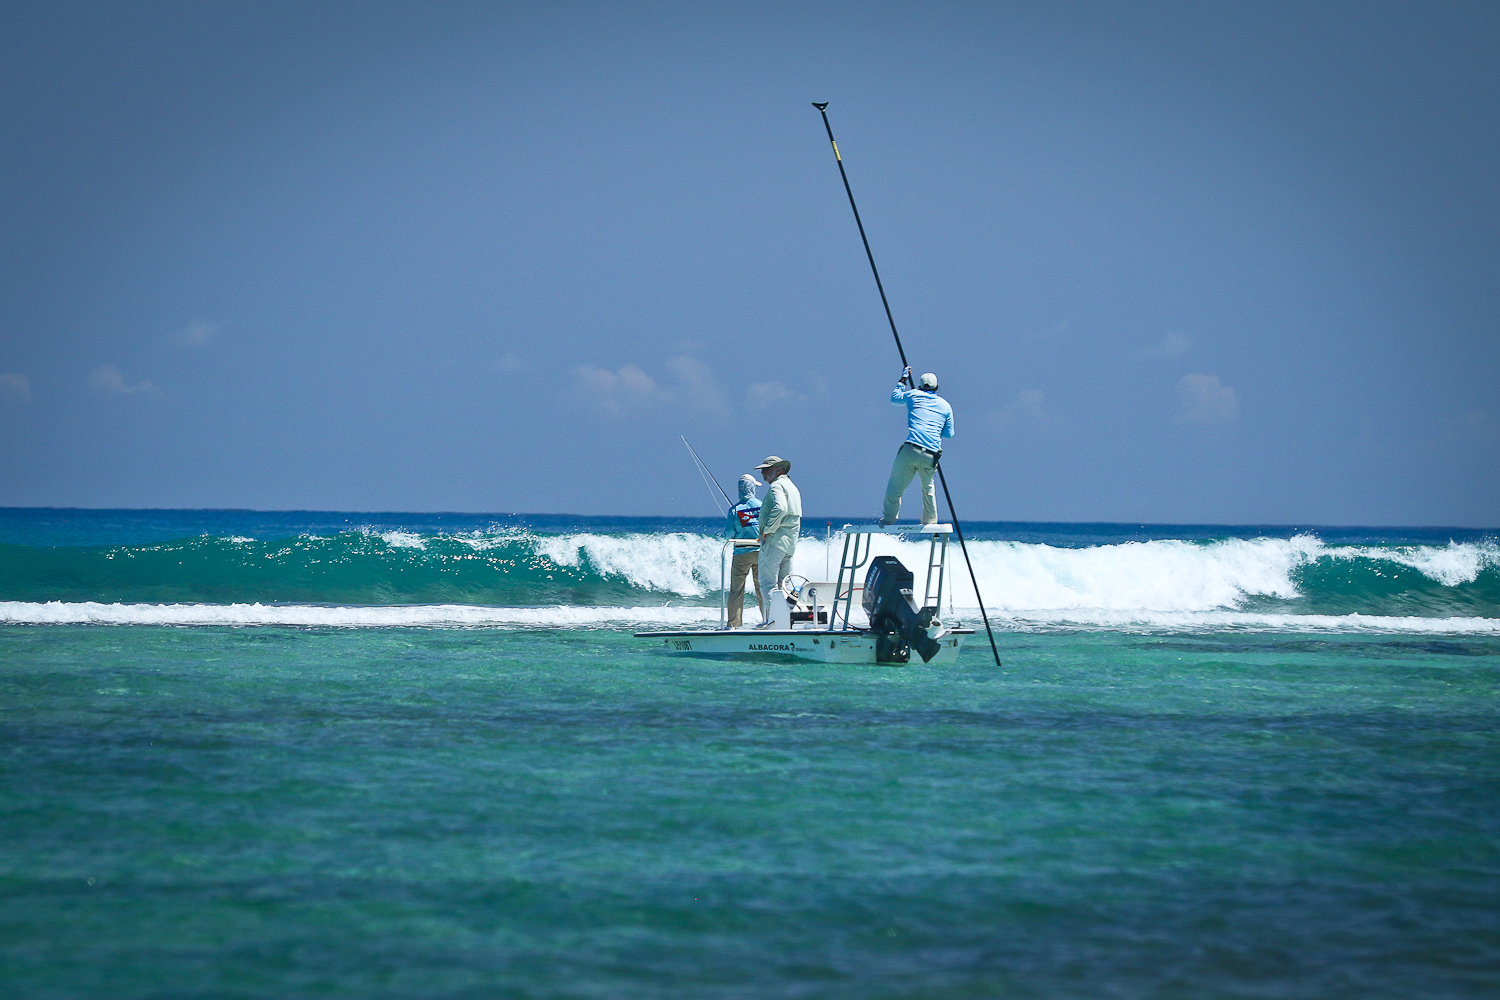 Tarpon fishing along the Western reef